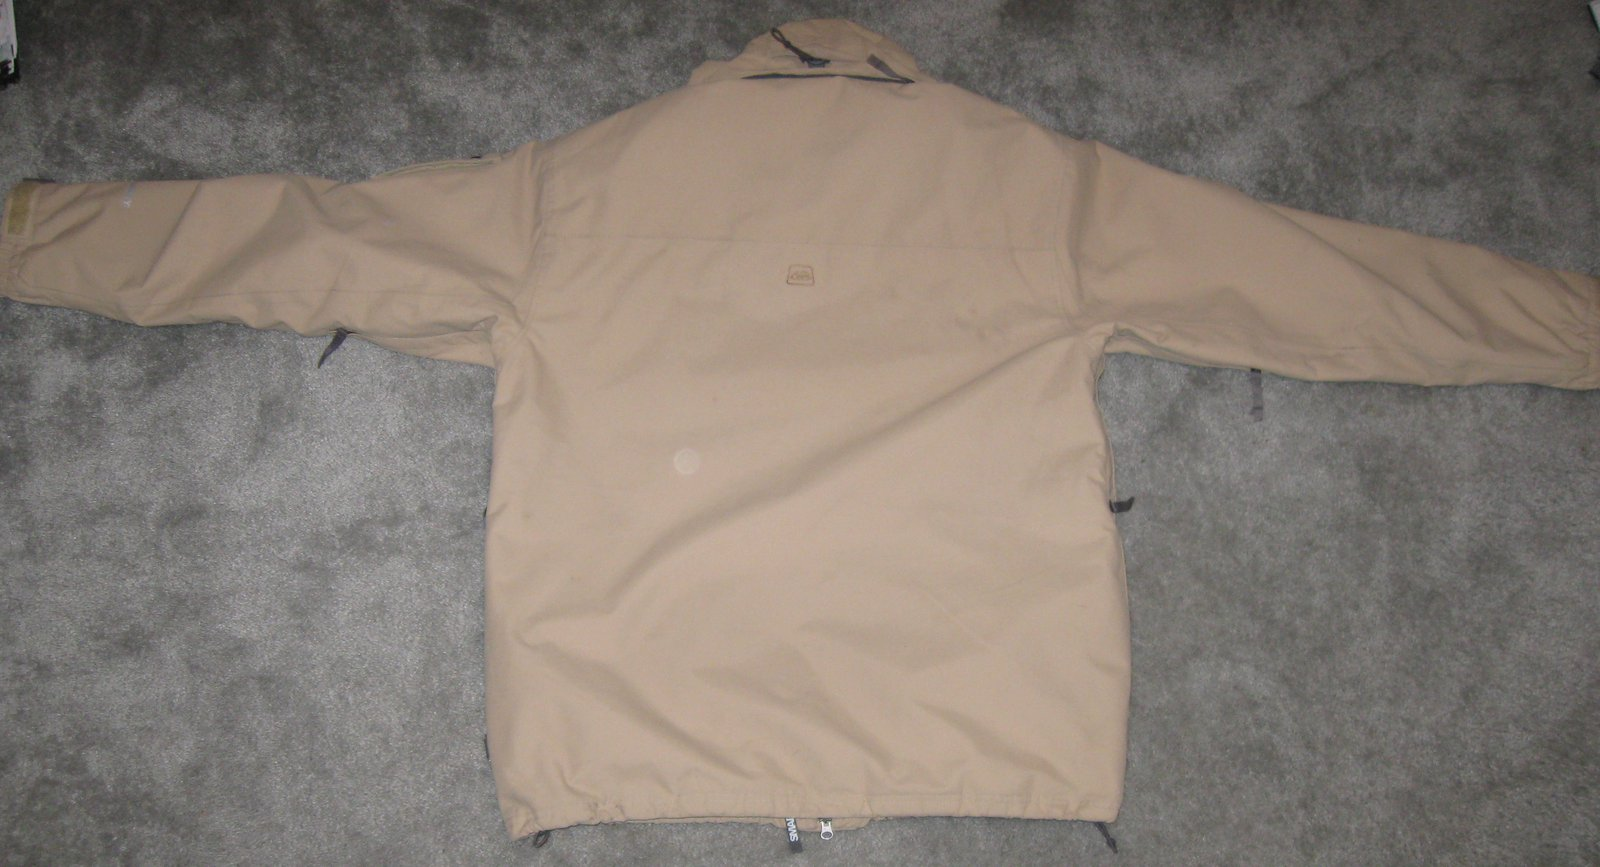 XXL 686 Smarty Troop 3-in-1 Jacket